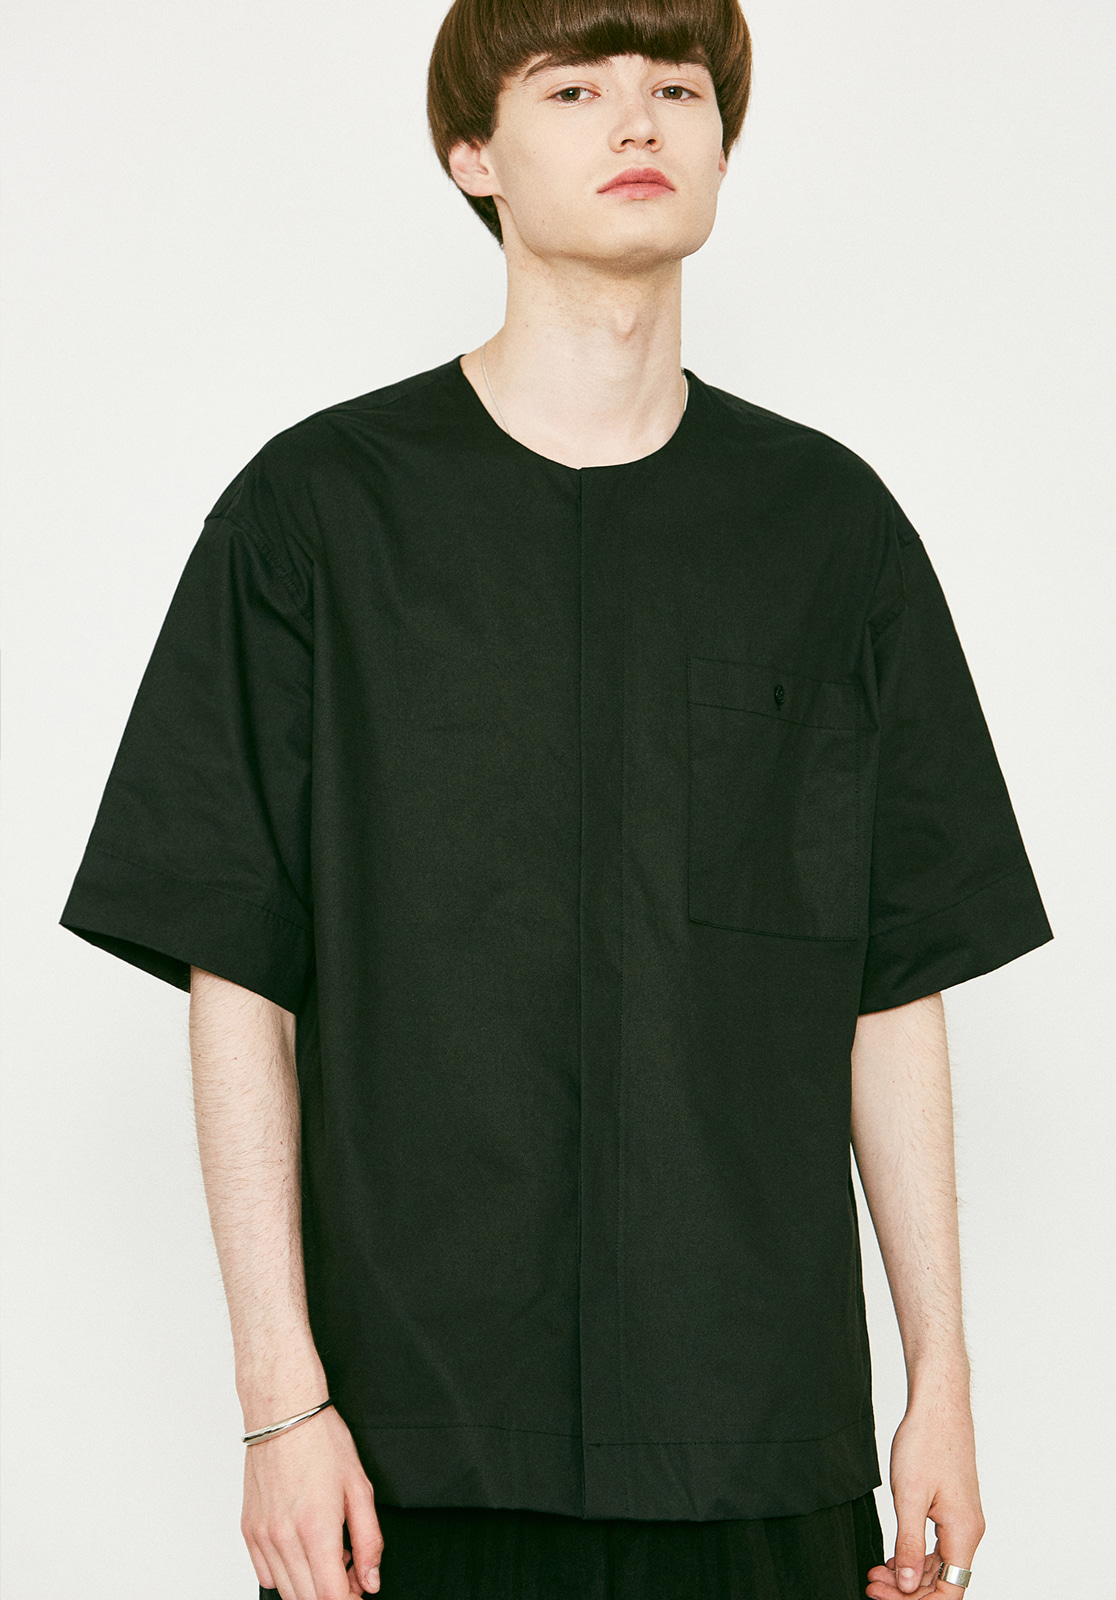 V455 POCKET ROUND HALF-SHIRTS BLACK